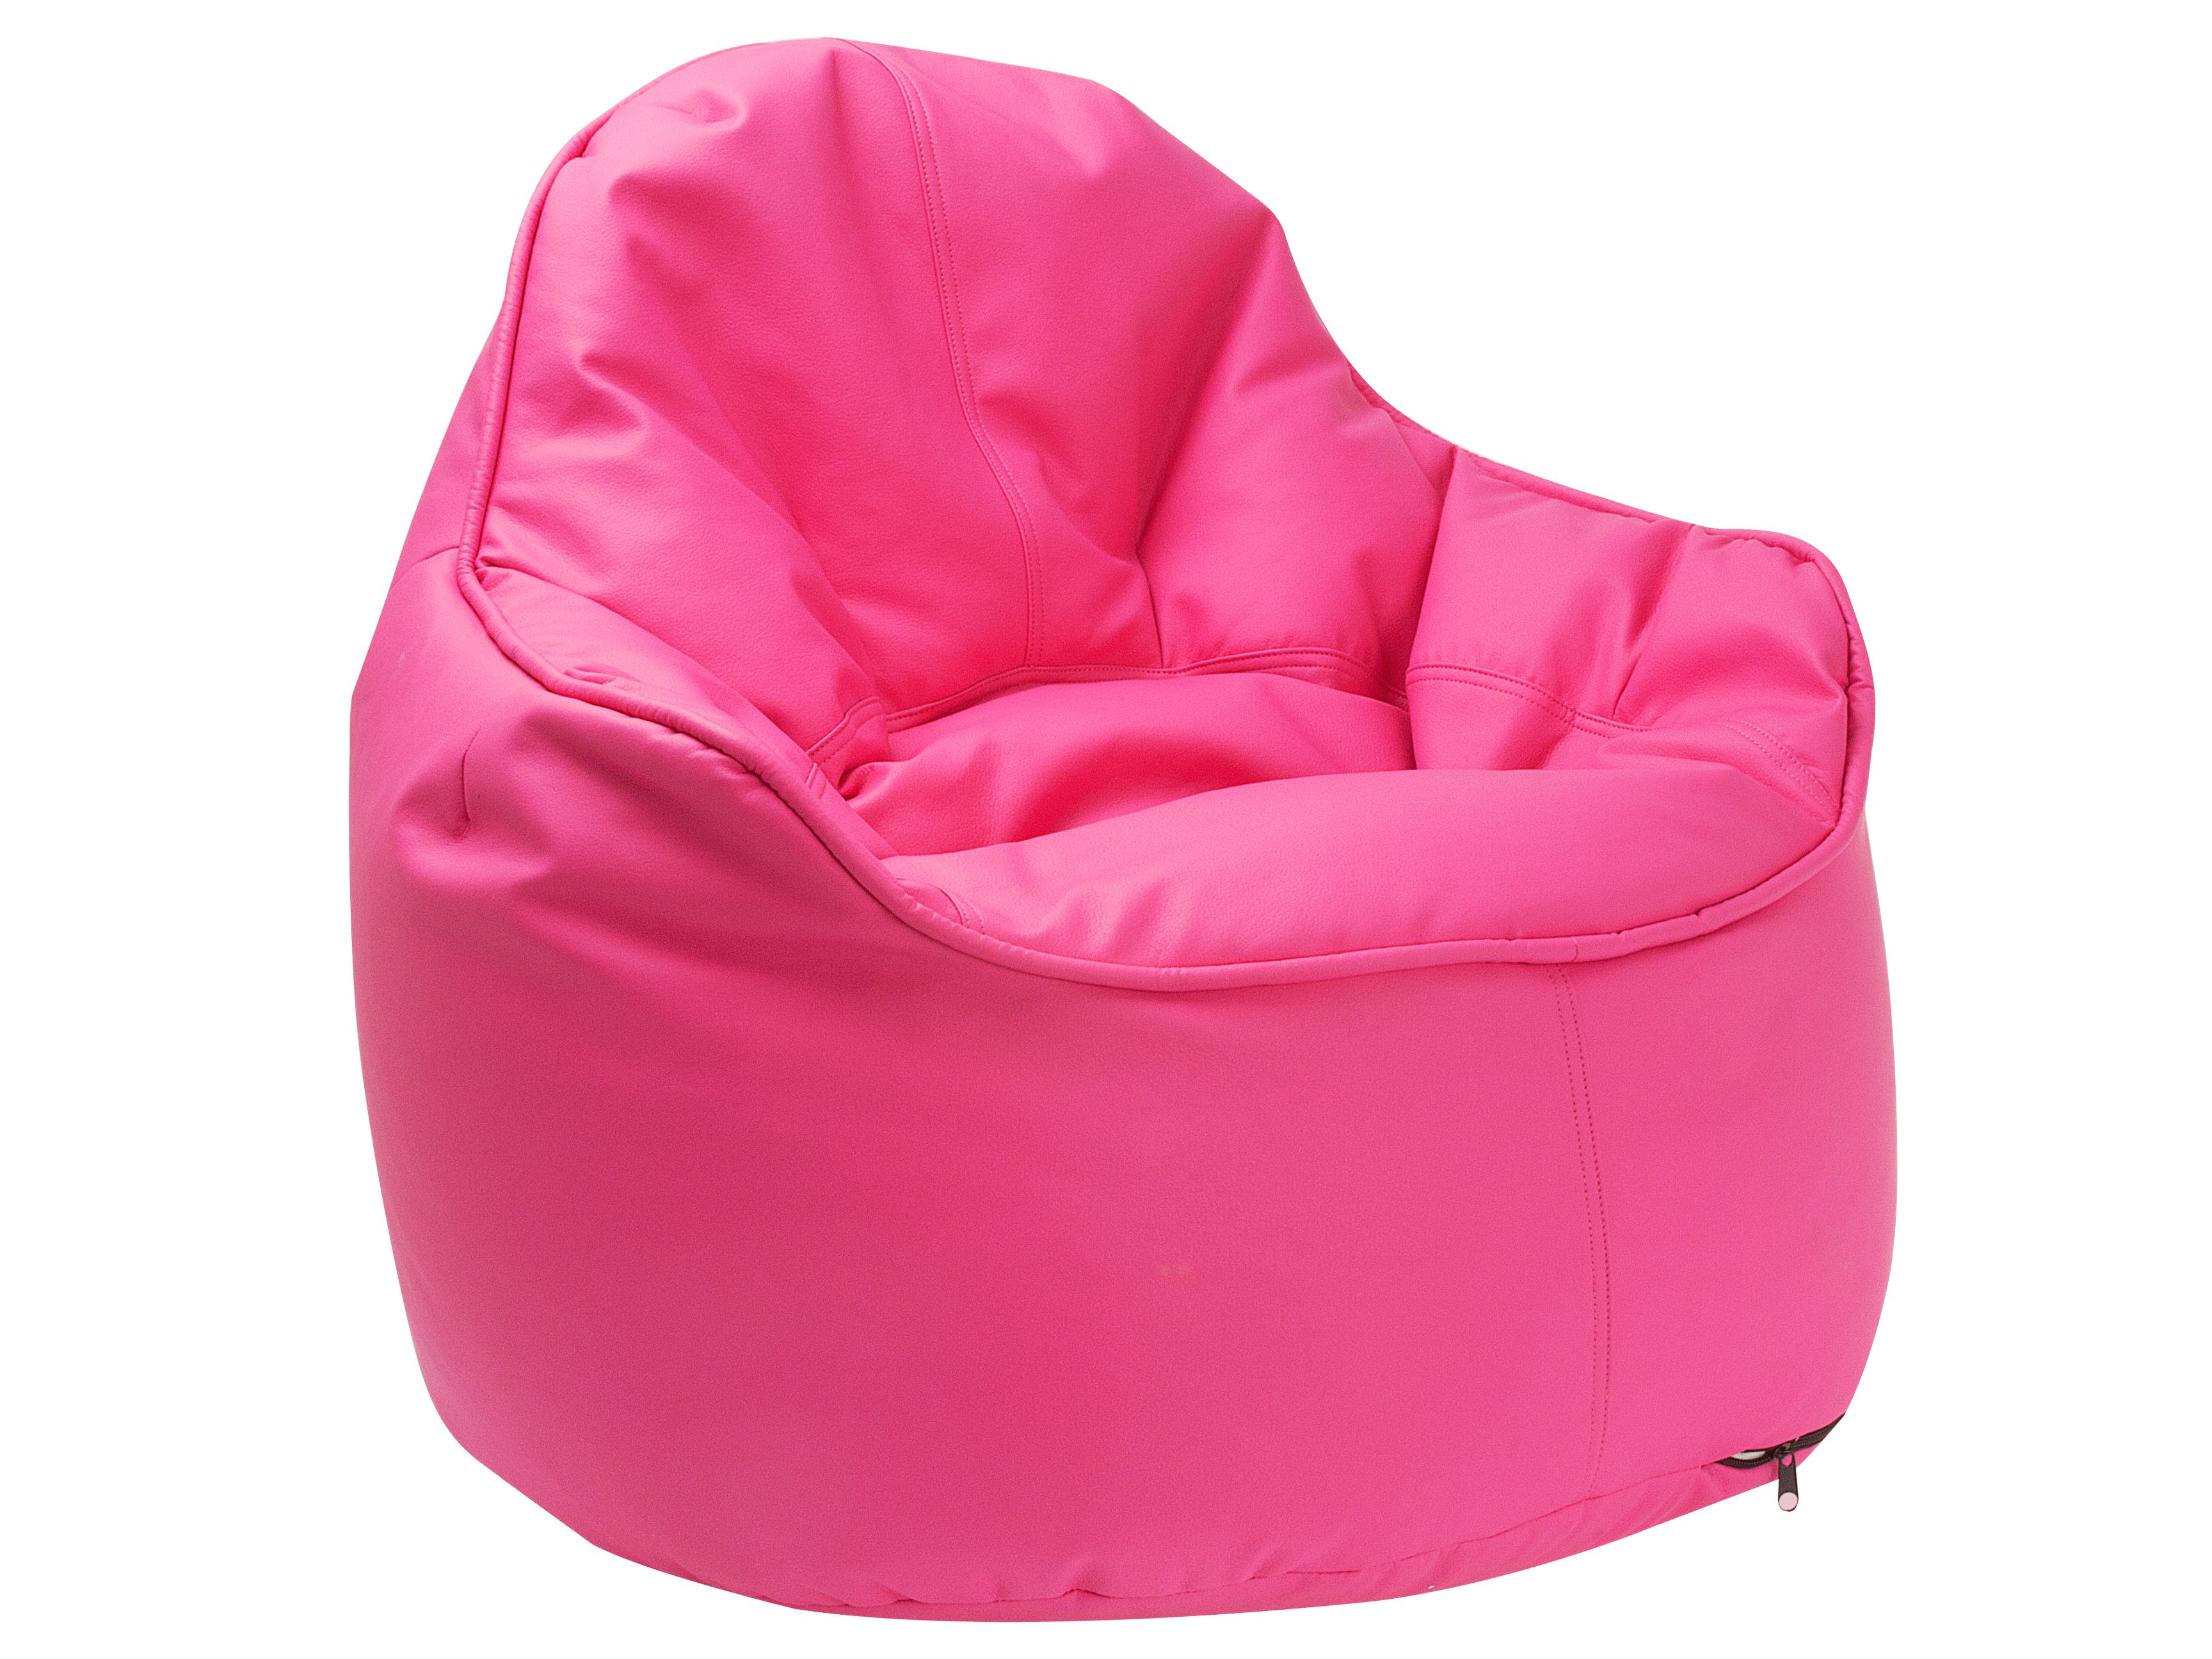 Pin on Bean Bag Chairs for Adults